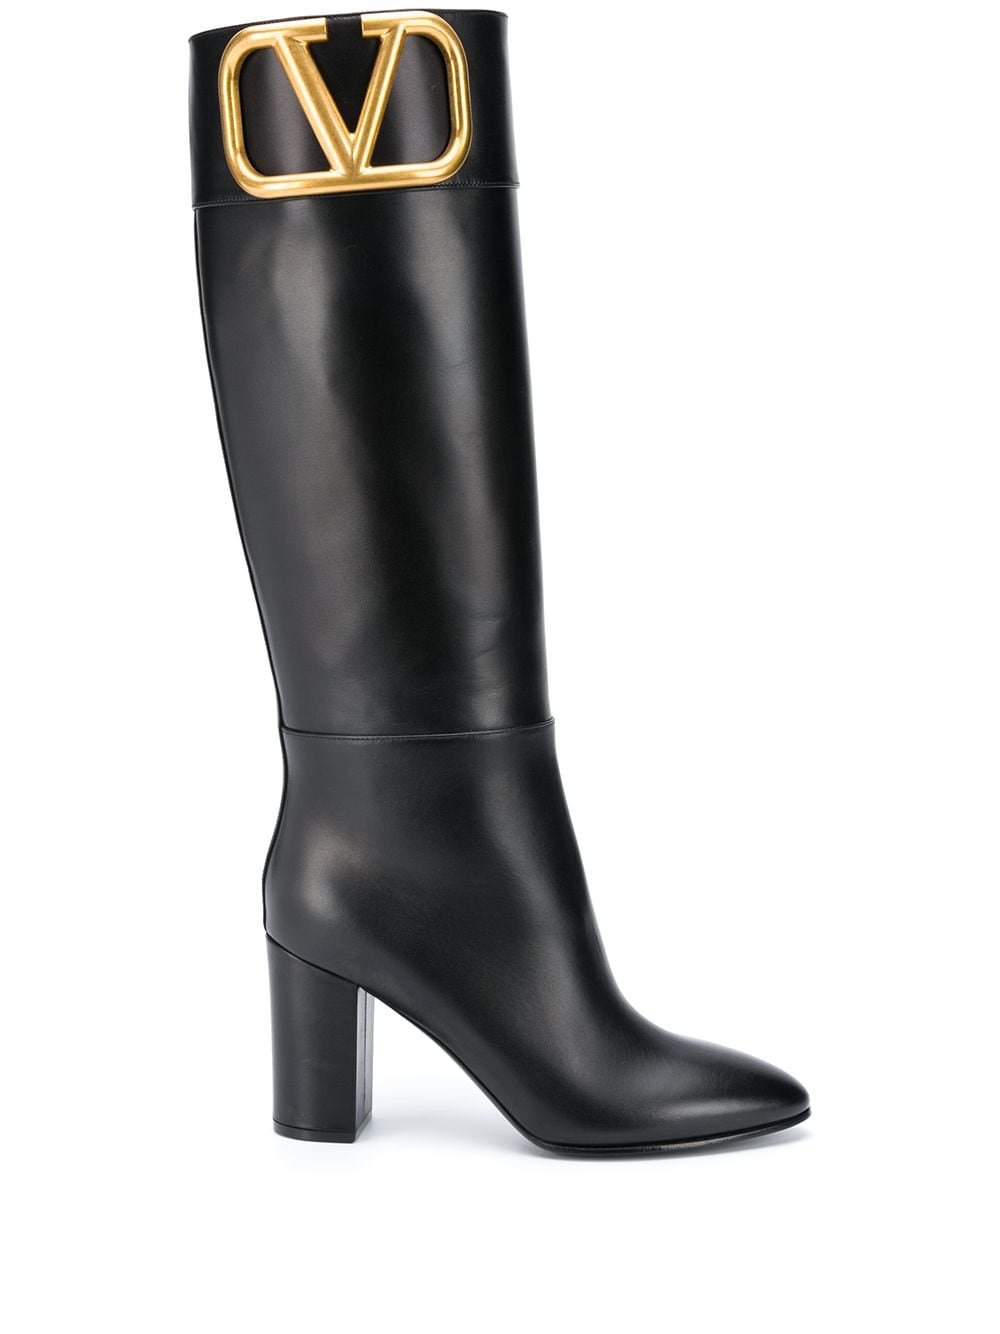 Vlogo Leather Boots